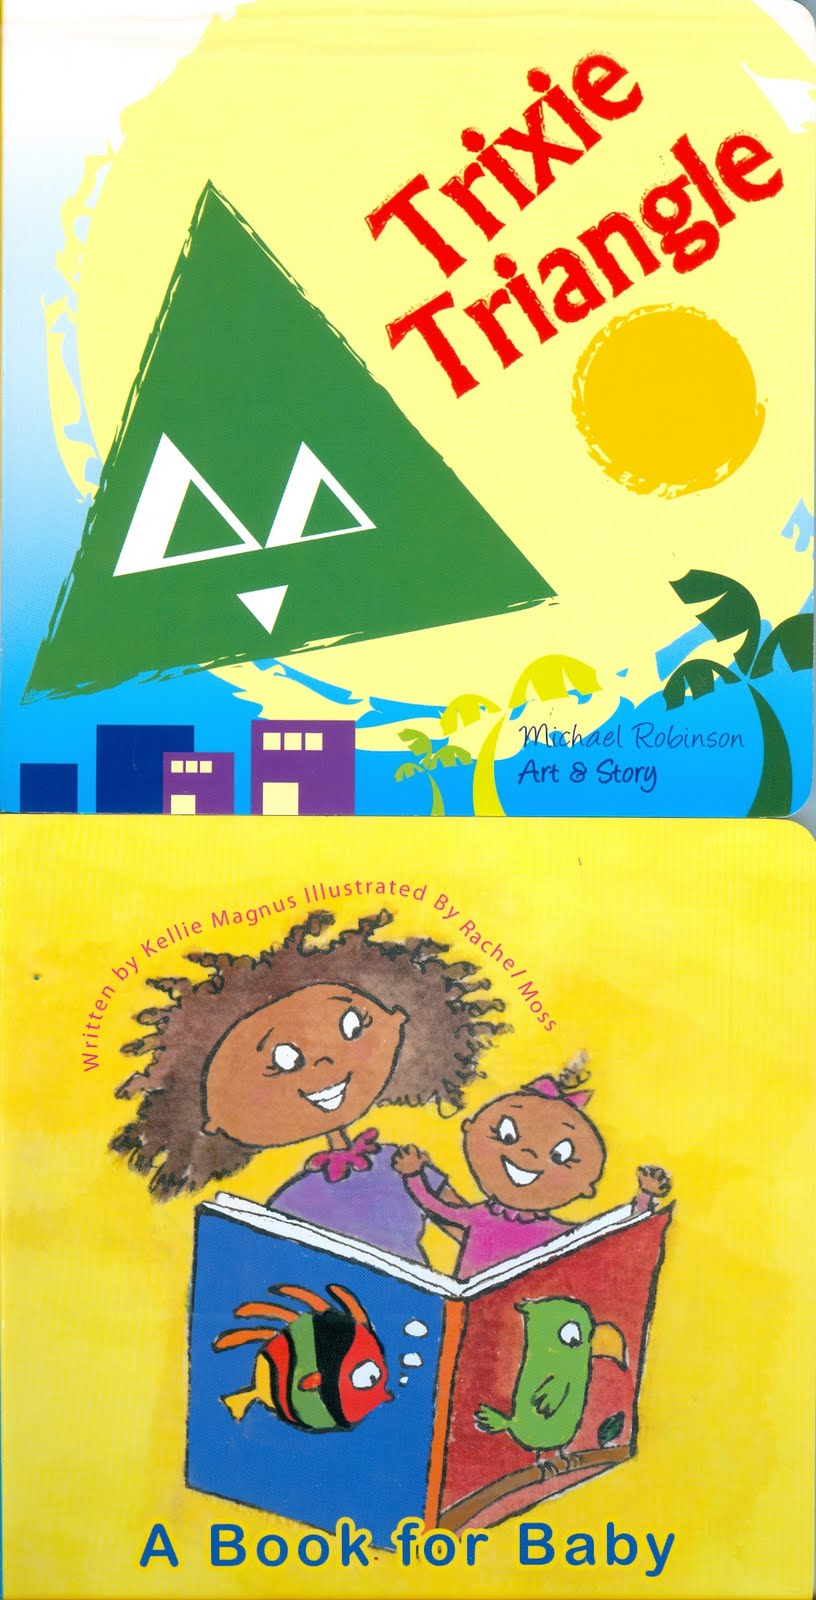 childrens literature in jamaica essay Competence has implications for overall school performance and possibly future success of our children interaction in a jamaican grade 7 class: teacher: literature they should be allowed to use both auditory and visual modes in individual as well as group activities the aim should be to have learners.